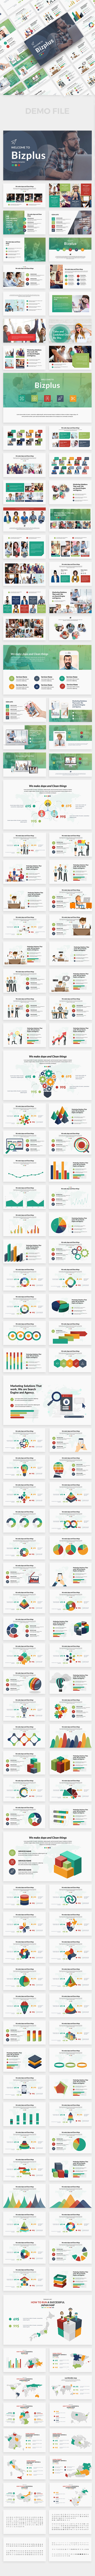 GraphicRiver BizPlus Multipurpose Powerpoint Template 20794103